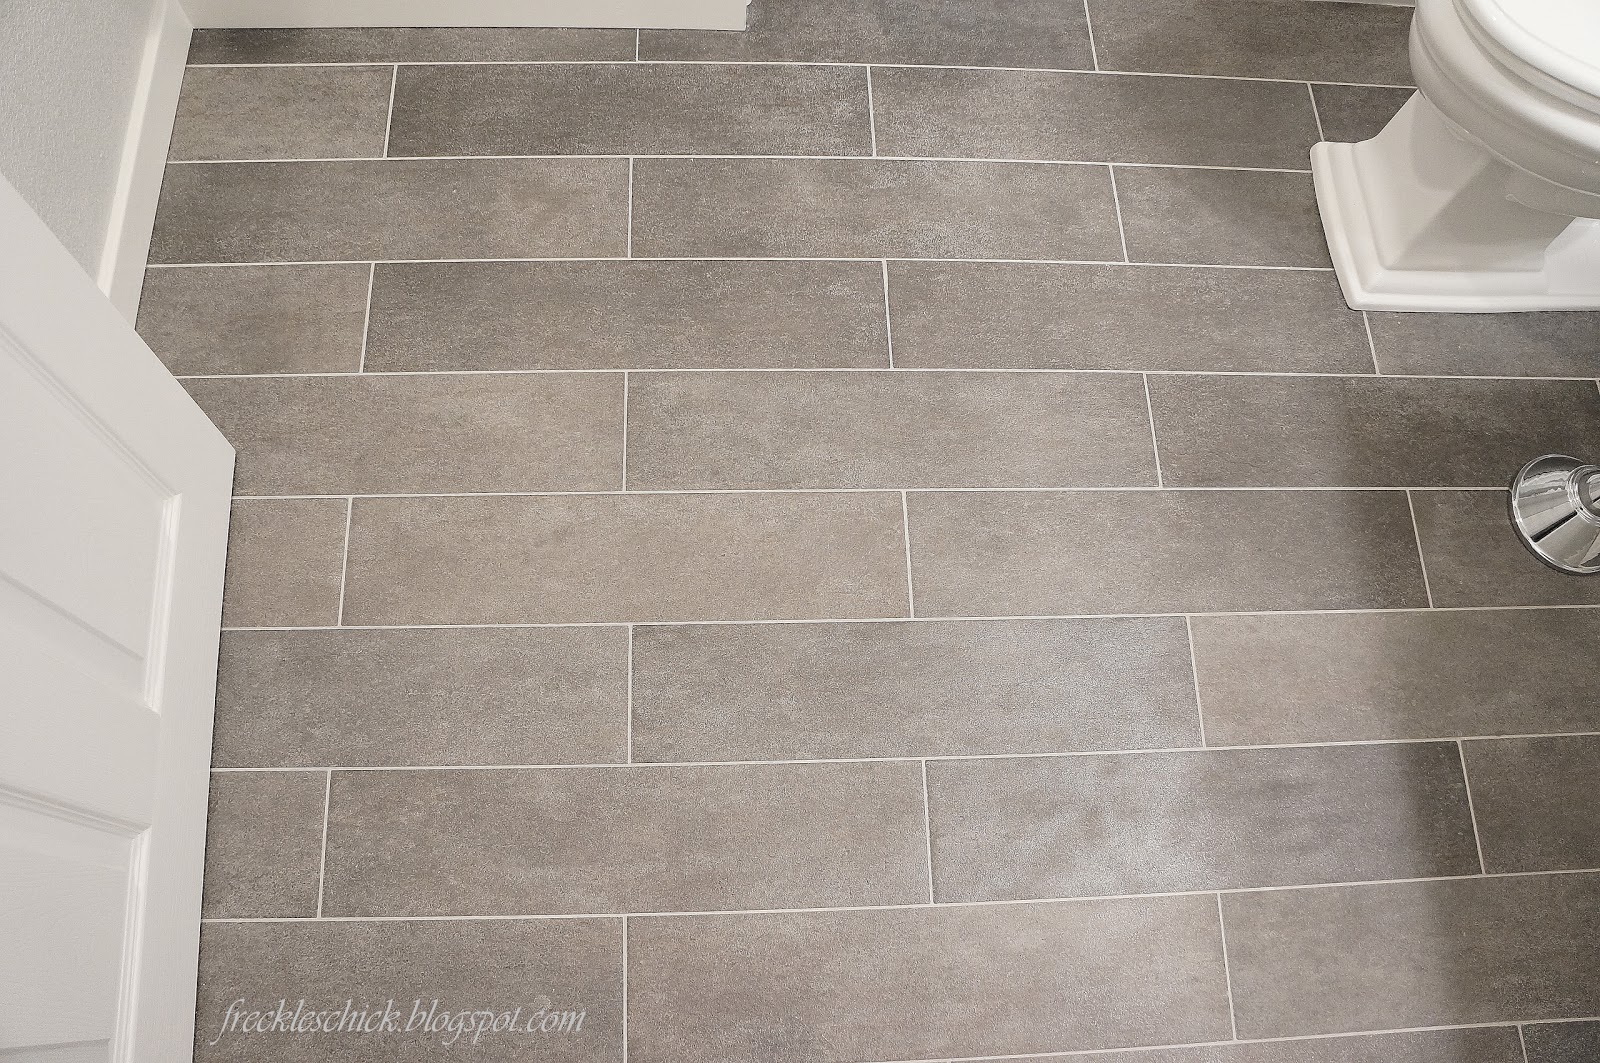 Http Freckleschick Blogspot Com 2012 03 Plank Bathroom Floor Tiles Html